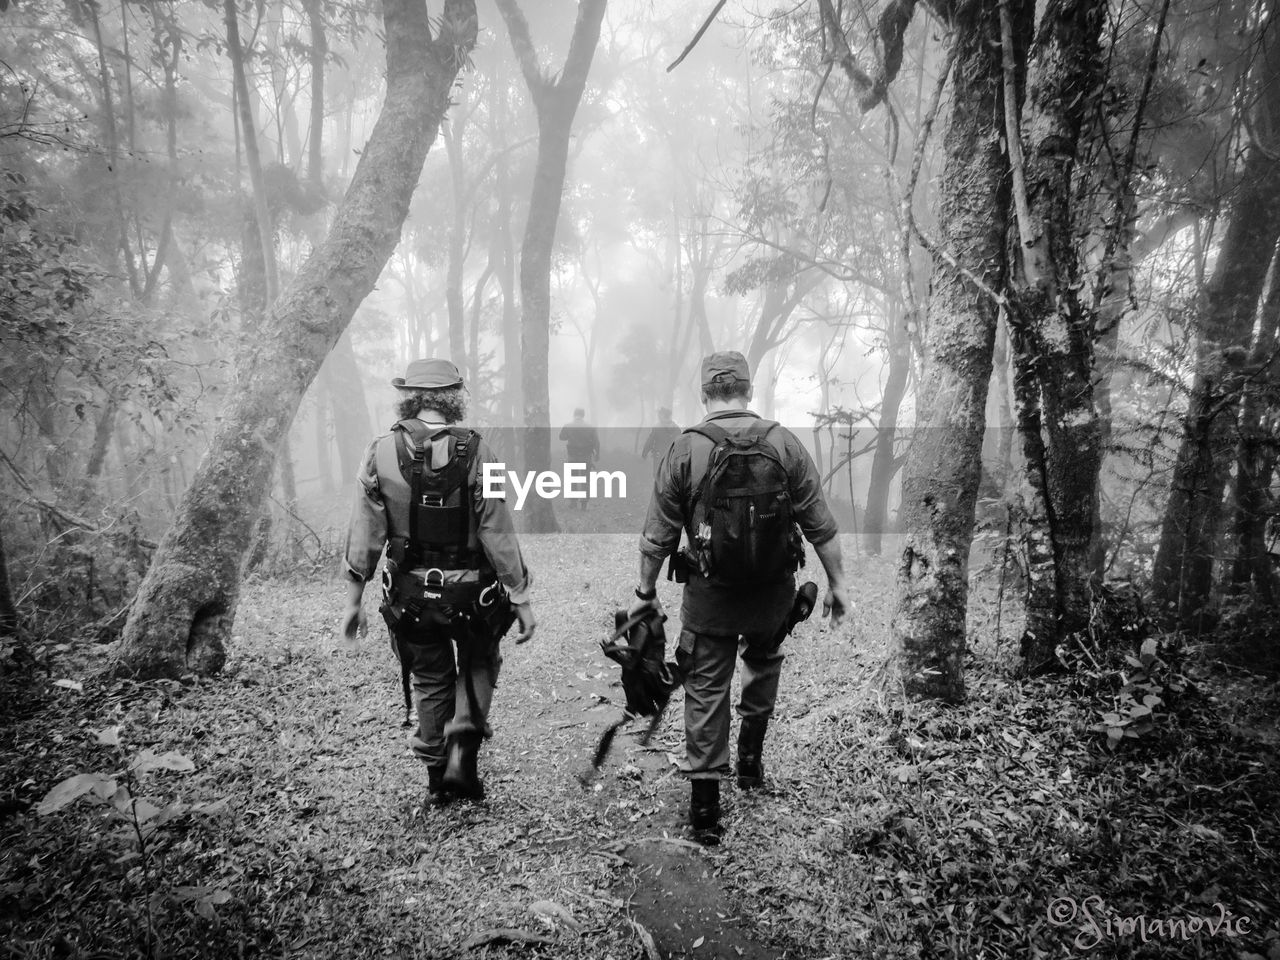 walking, backpack, forest, tree, rear view, teamwork, real people, adventure, two people, weapon, only men, helmet, full length, togetherness, courage, army soldier, hiking, adults only, uniform, nature, people, fog, military, challenge, men, day, army, firefighter, outdoors, young adult, friendship, adult, riot